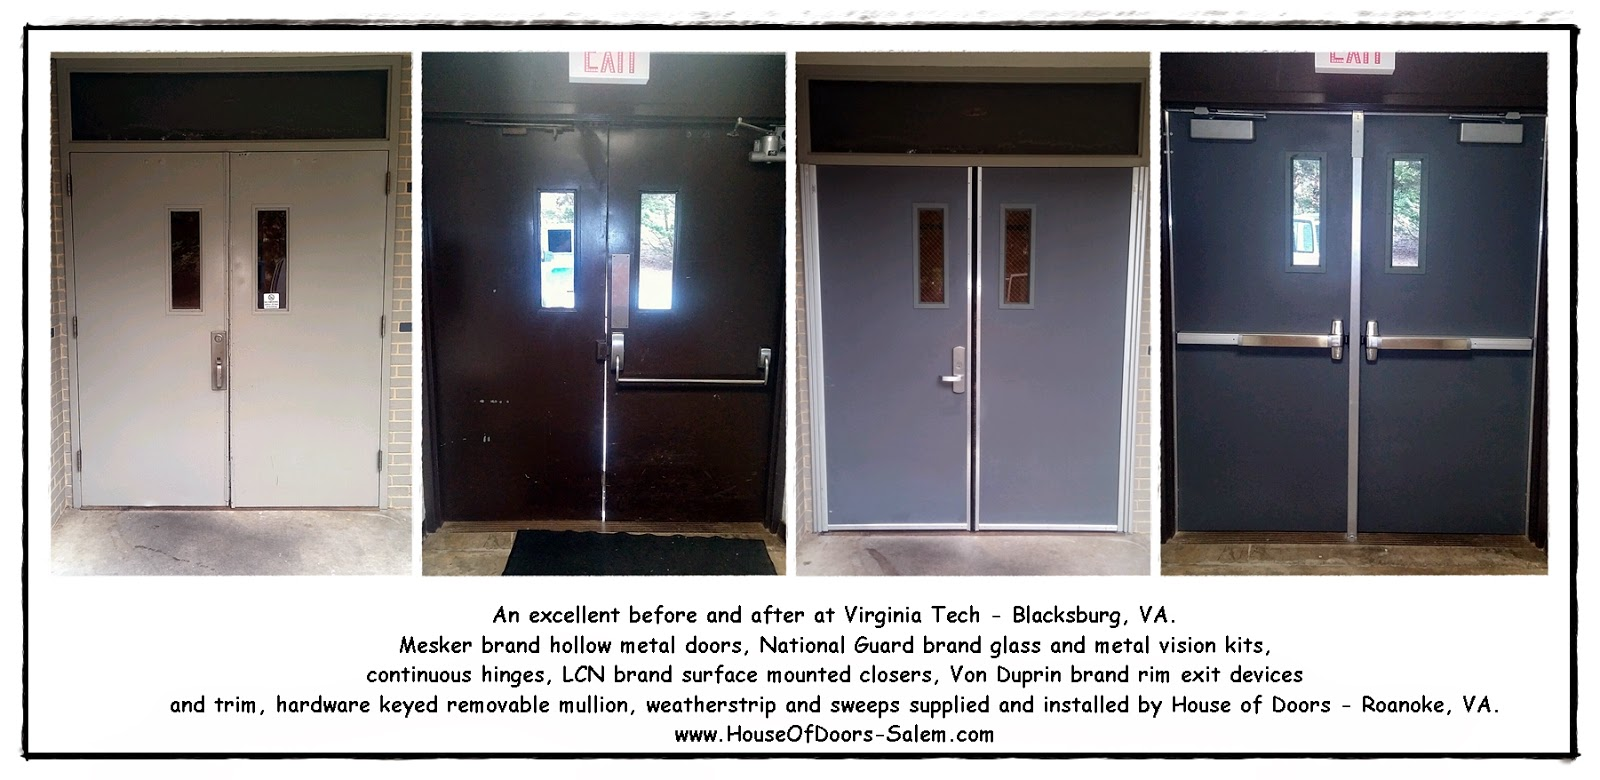 780 #4F607C House Of Doors Roanoke VA: Commercial Doors Frames And Hardware  save image Commercial Doors & Hardware 12871600